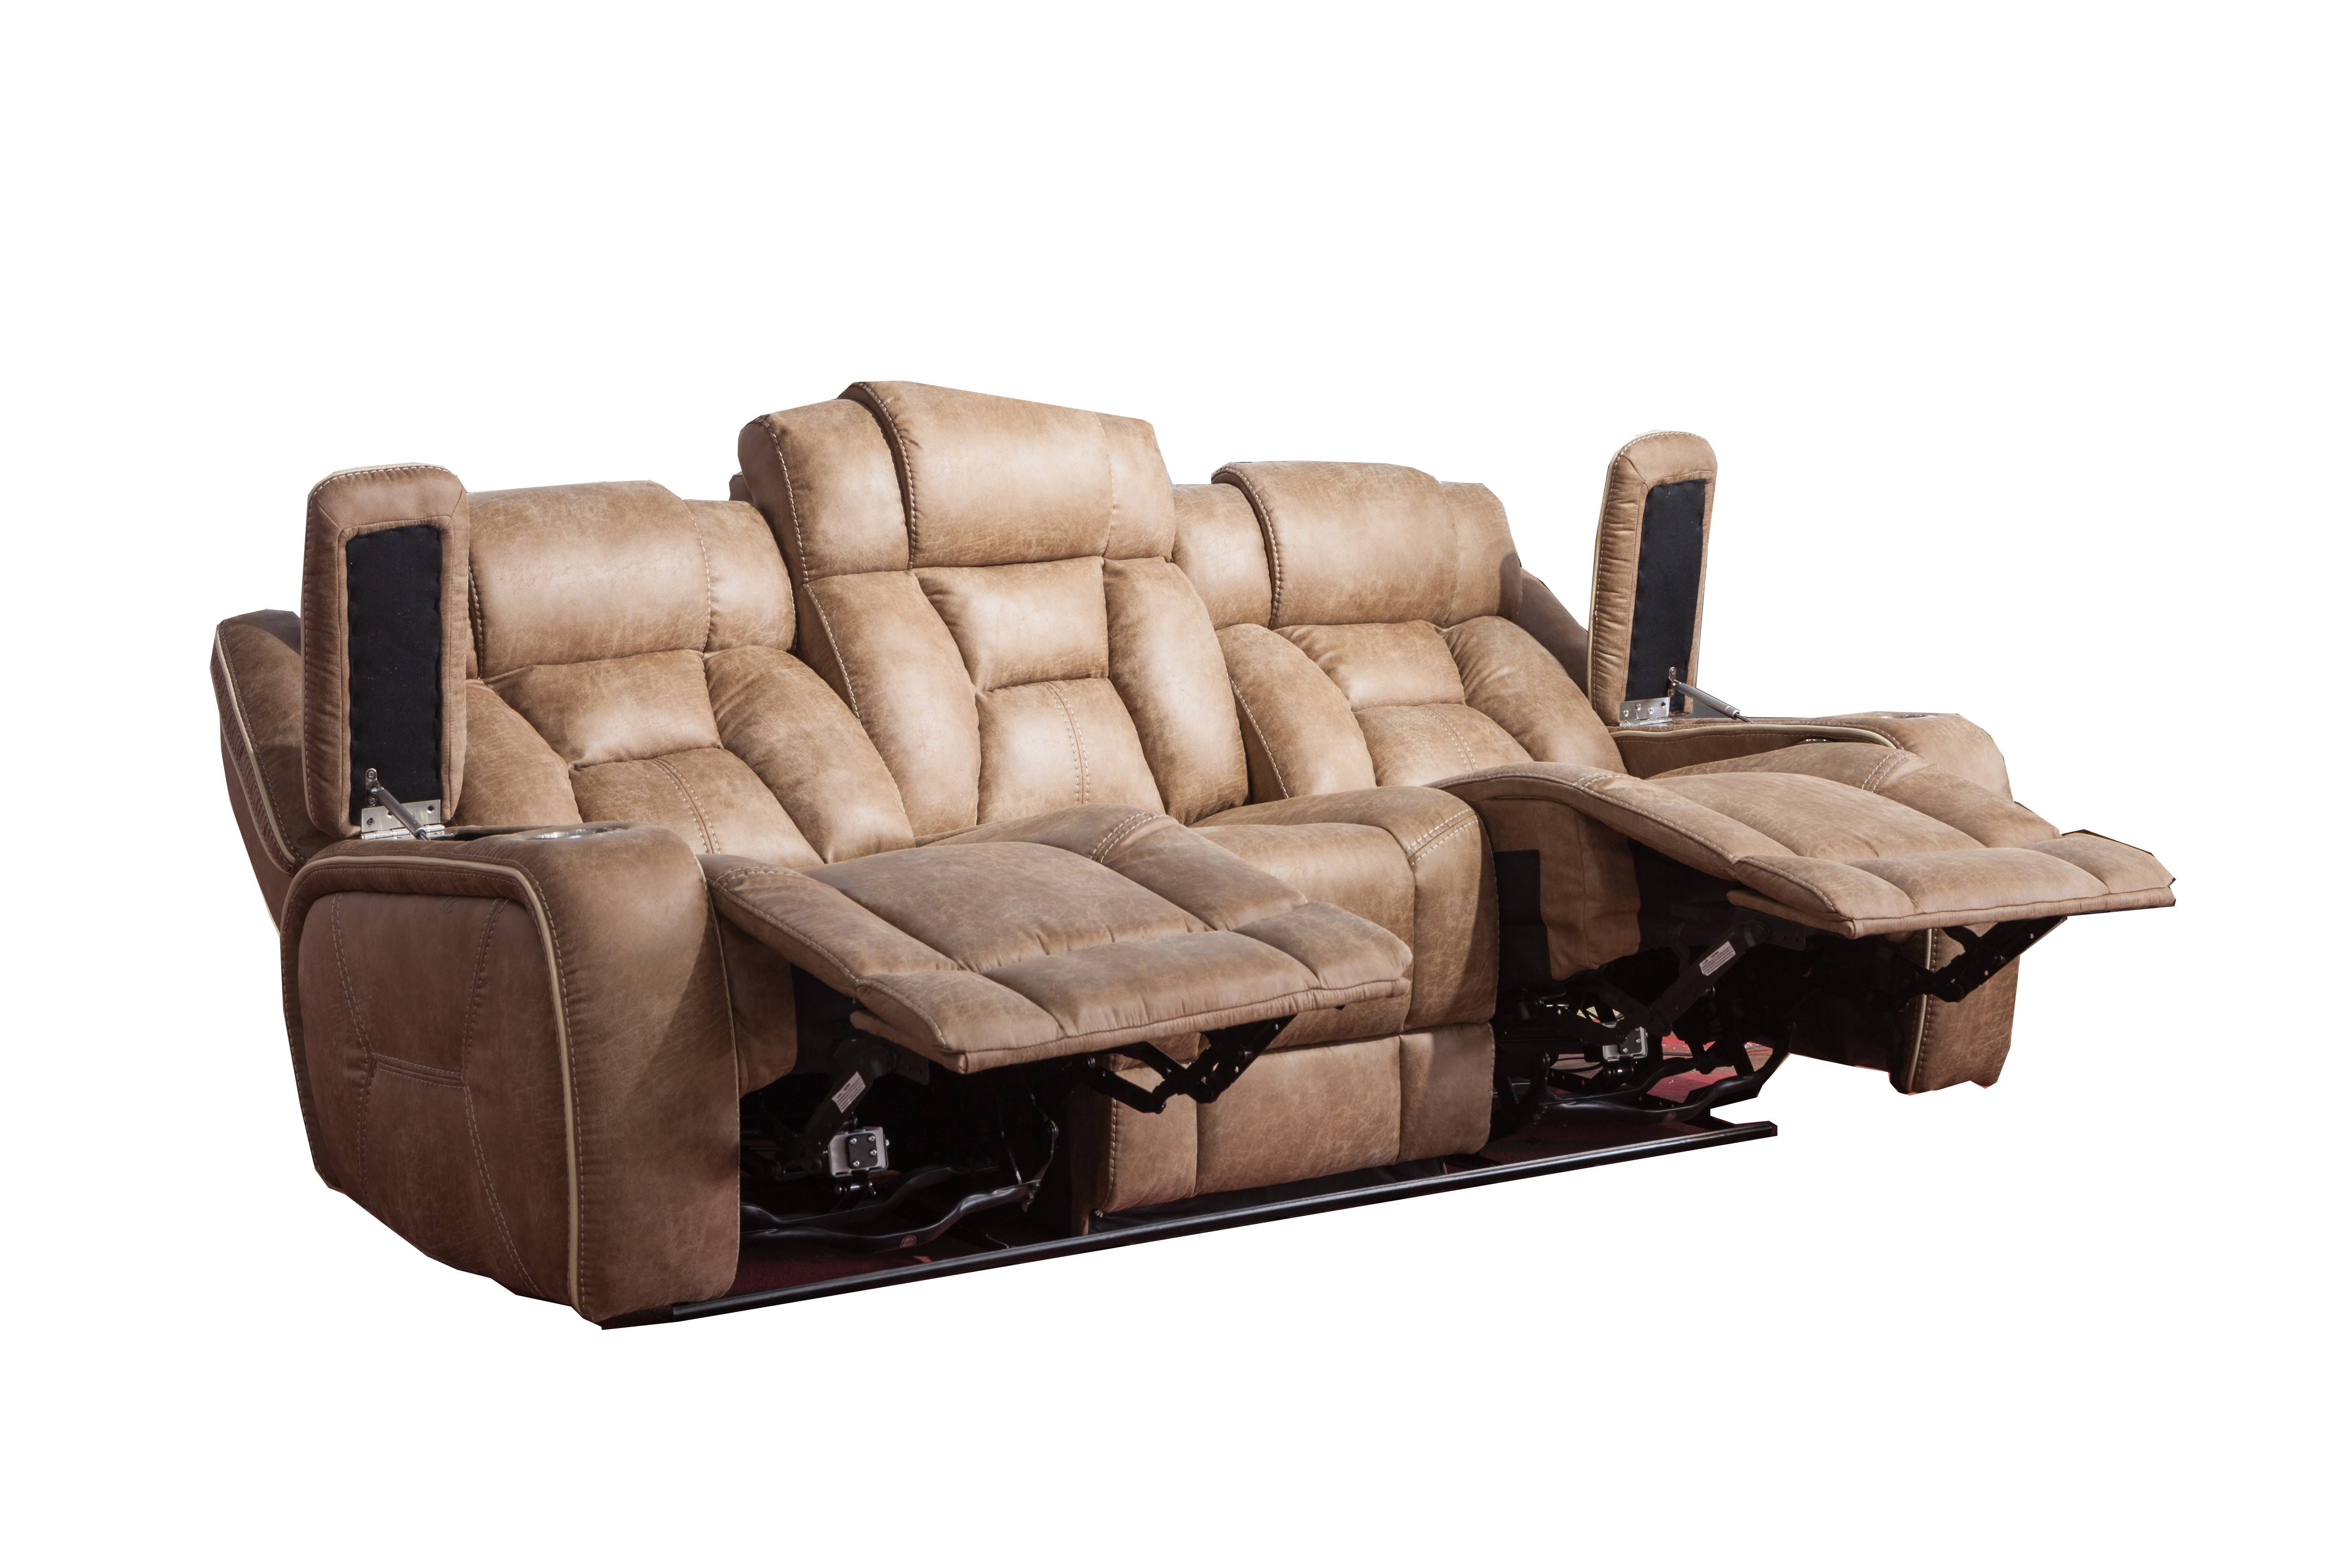 New high quality electric leather sofa,home furniture luxury sofa set